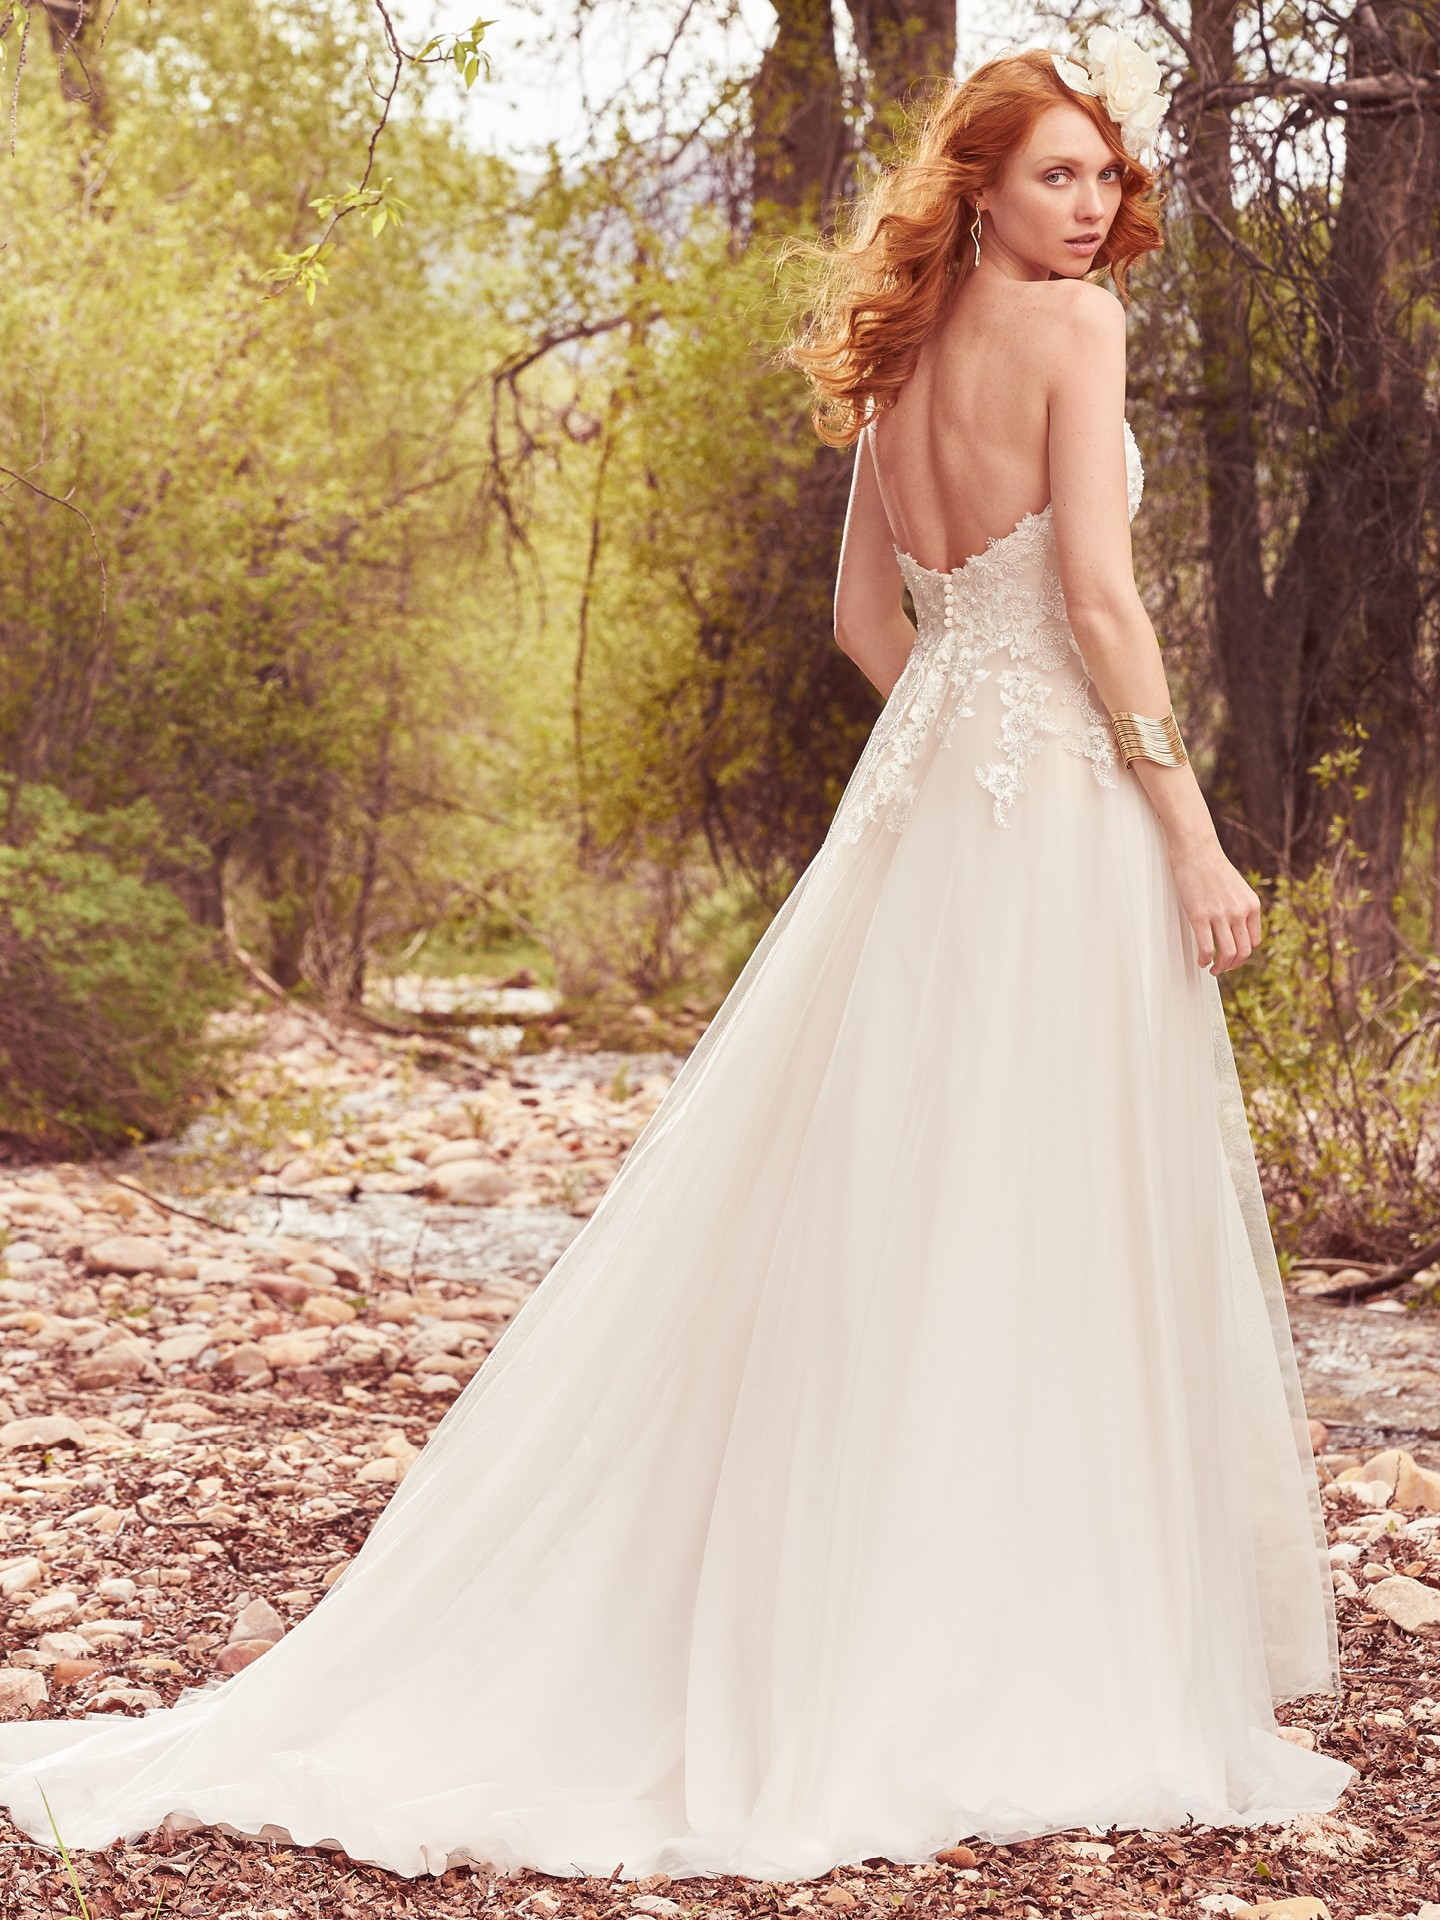 Ivory over blush wedding dress by Maggie Sottero. Colorful Wedding Dresses For The Bold Bride